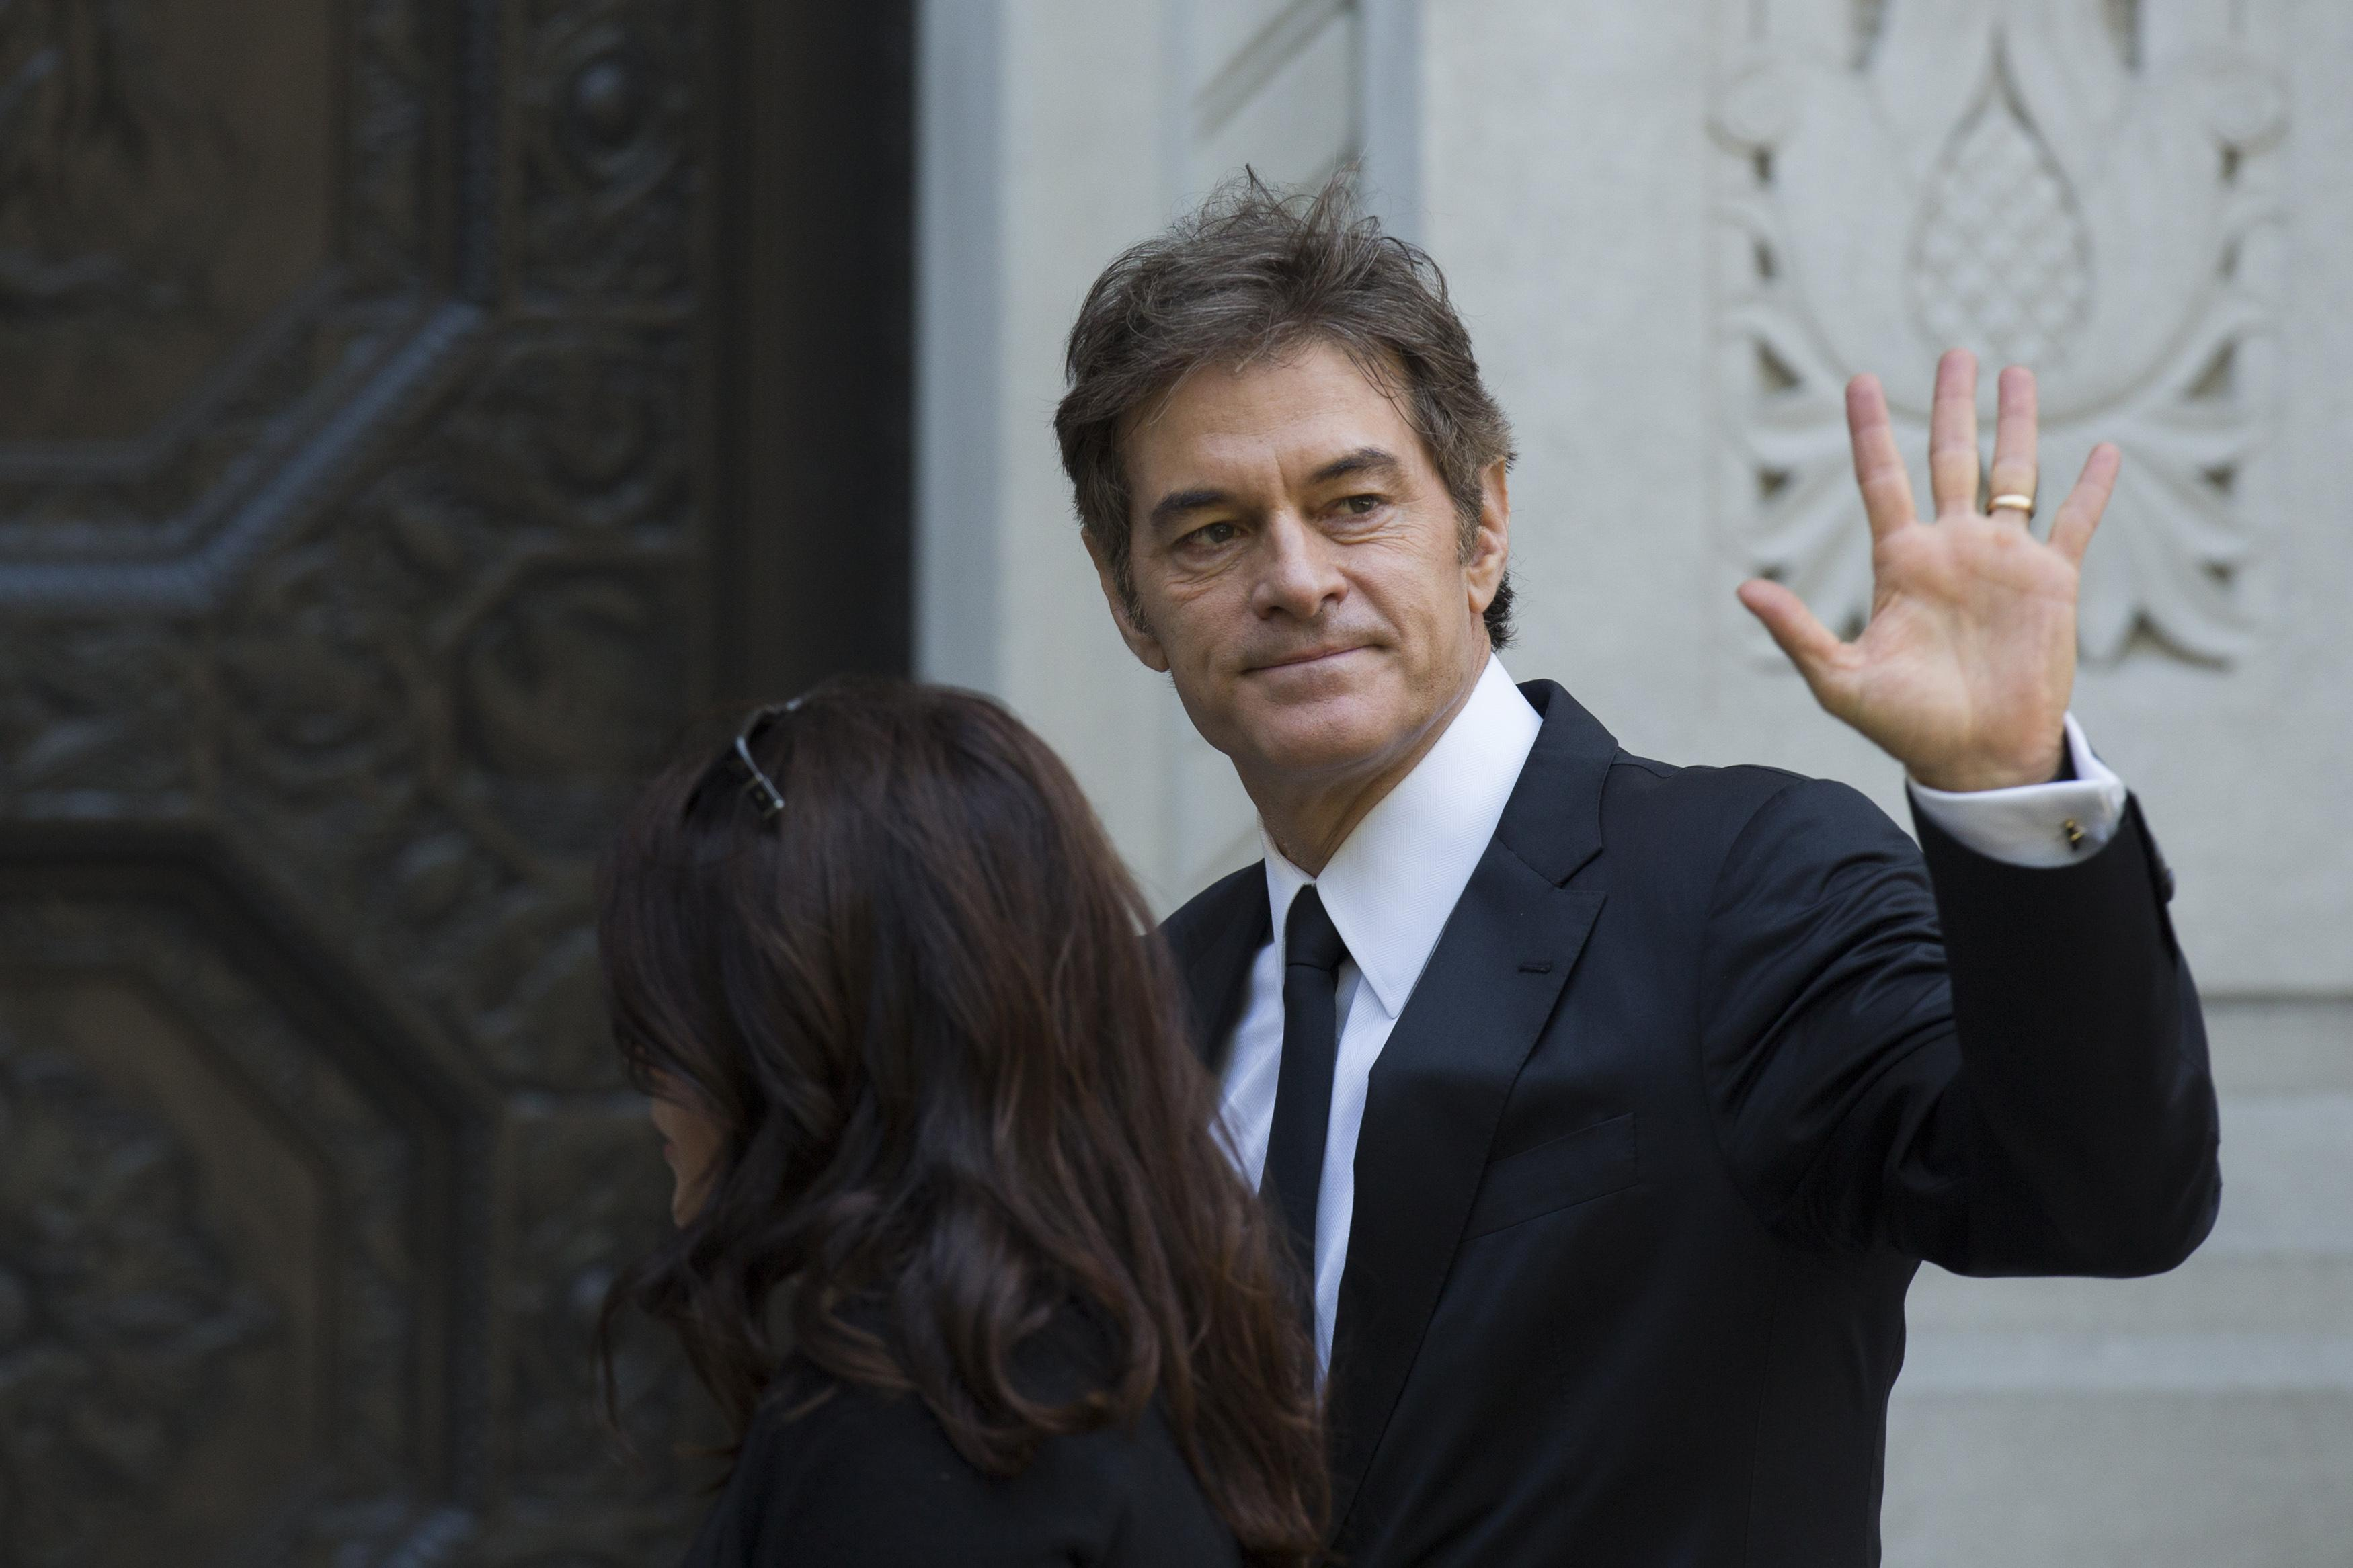 Joan Rivers Funeral: Dr. Oz